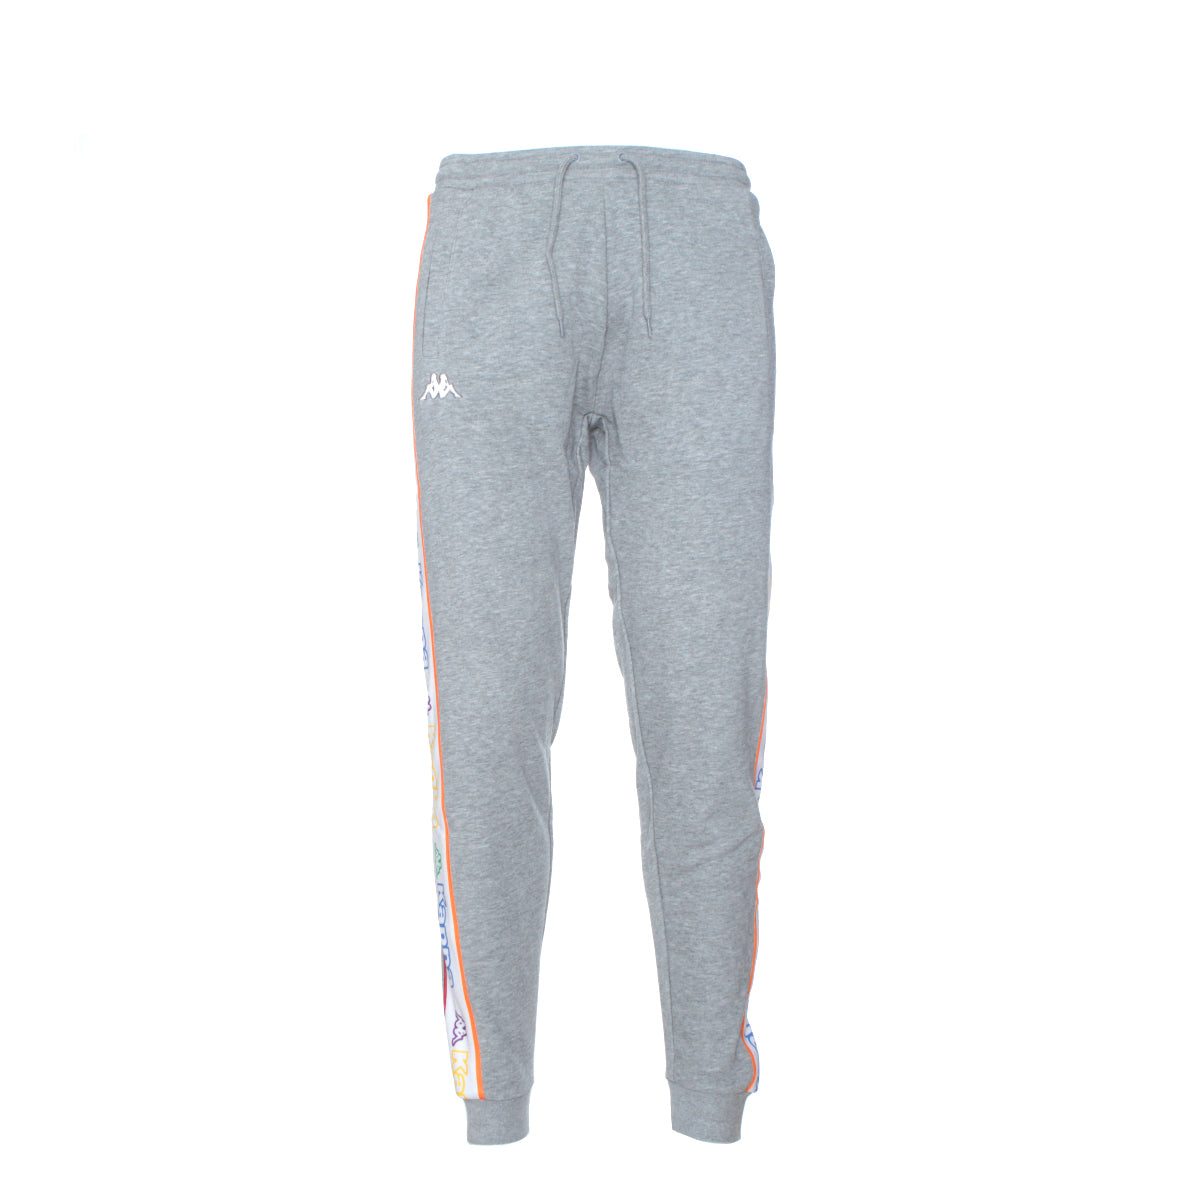 Kappa Aniradi Logo Tape Men's Sweatpants Grey